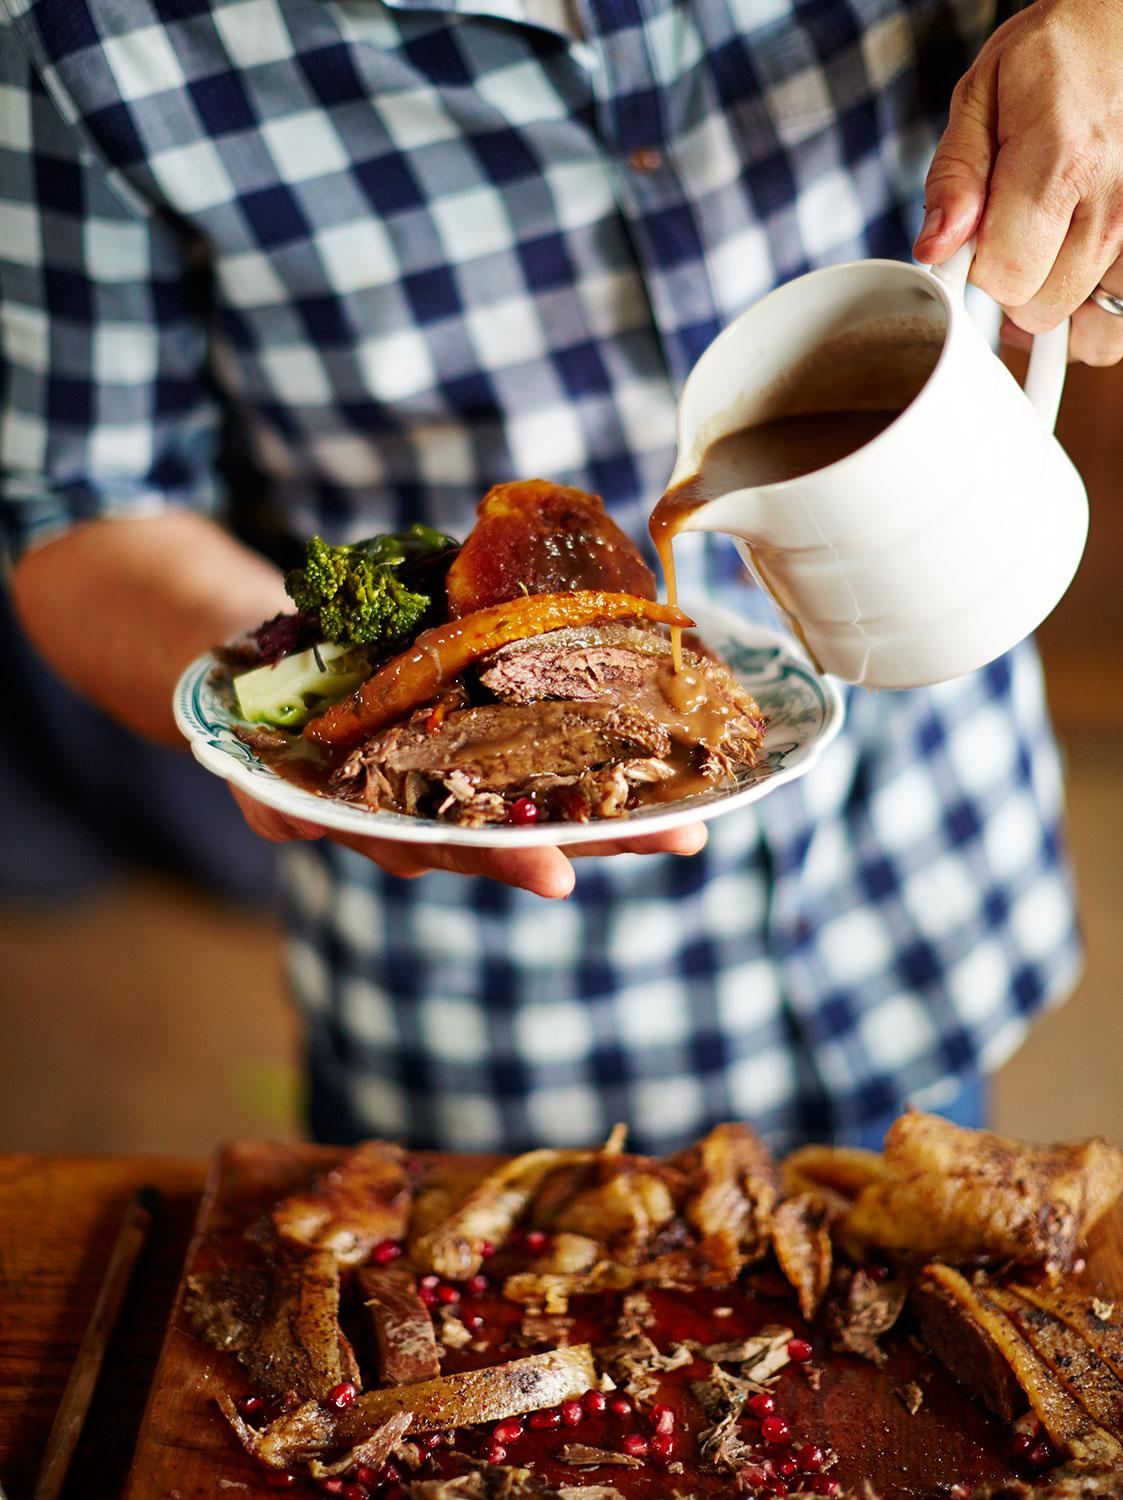 #Recipeoftheday is a #Christmas classic! Spiced roast goose with a rich port gravy http://t.co/Z8BDwkMuxC http://t.co/wBxRwI5PSg